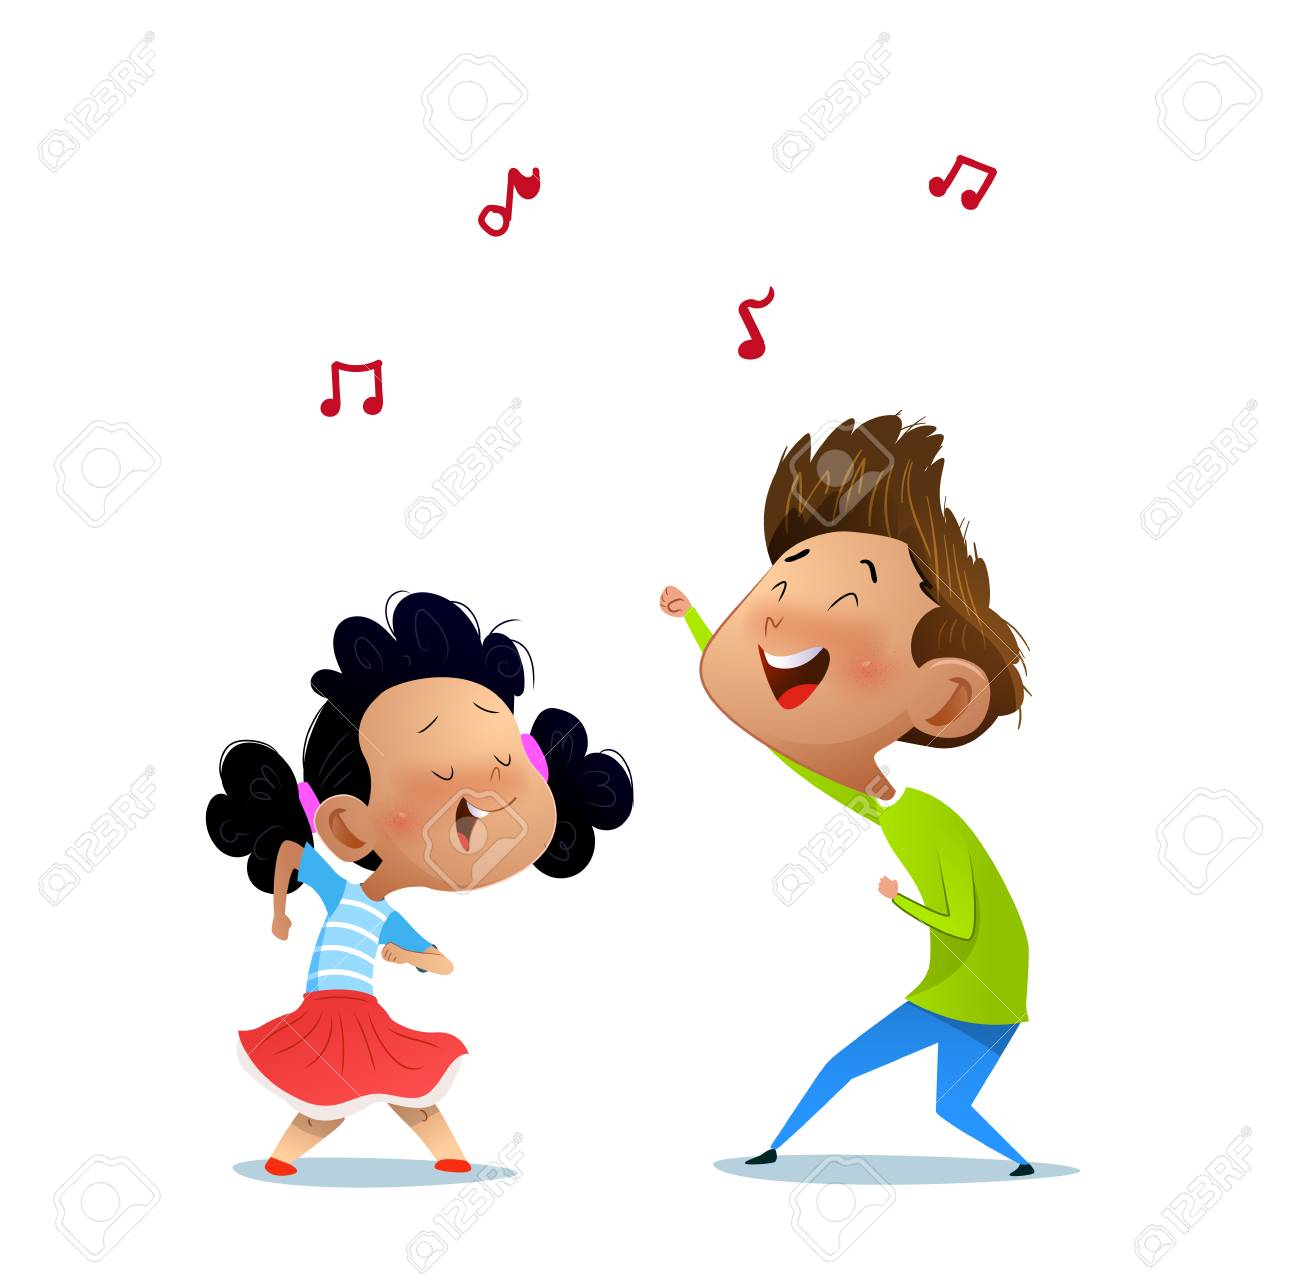 Illustration Of Two Dancing Kids Cartoon Vector Illustration Royalty Free Cliparts Vectors And Stock Illustration Image 115243747